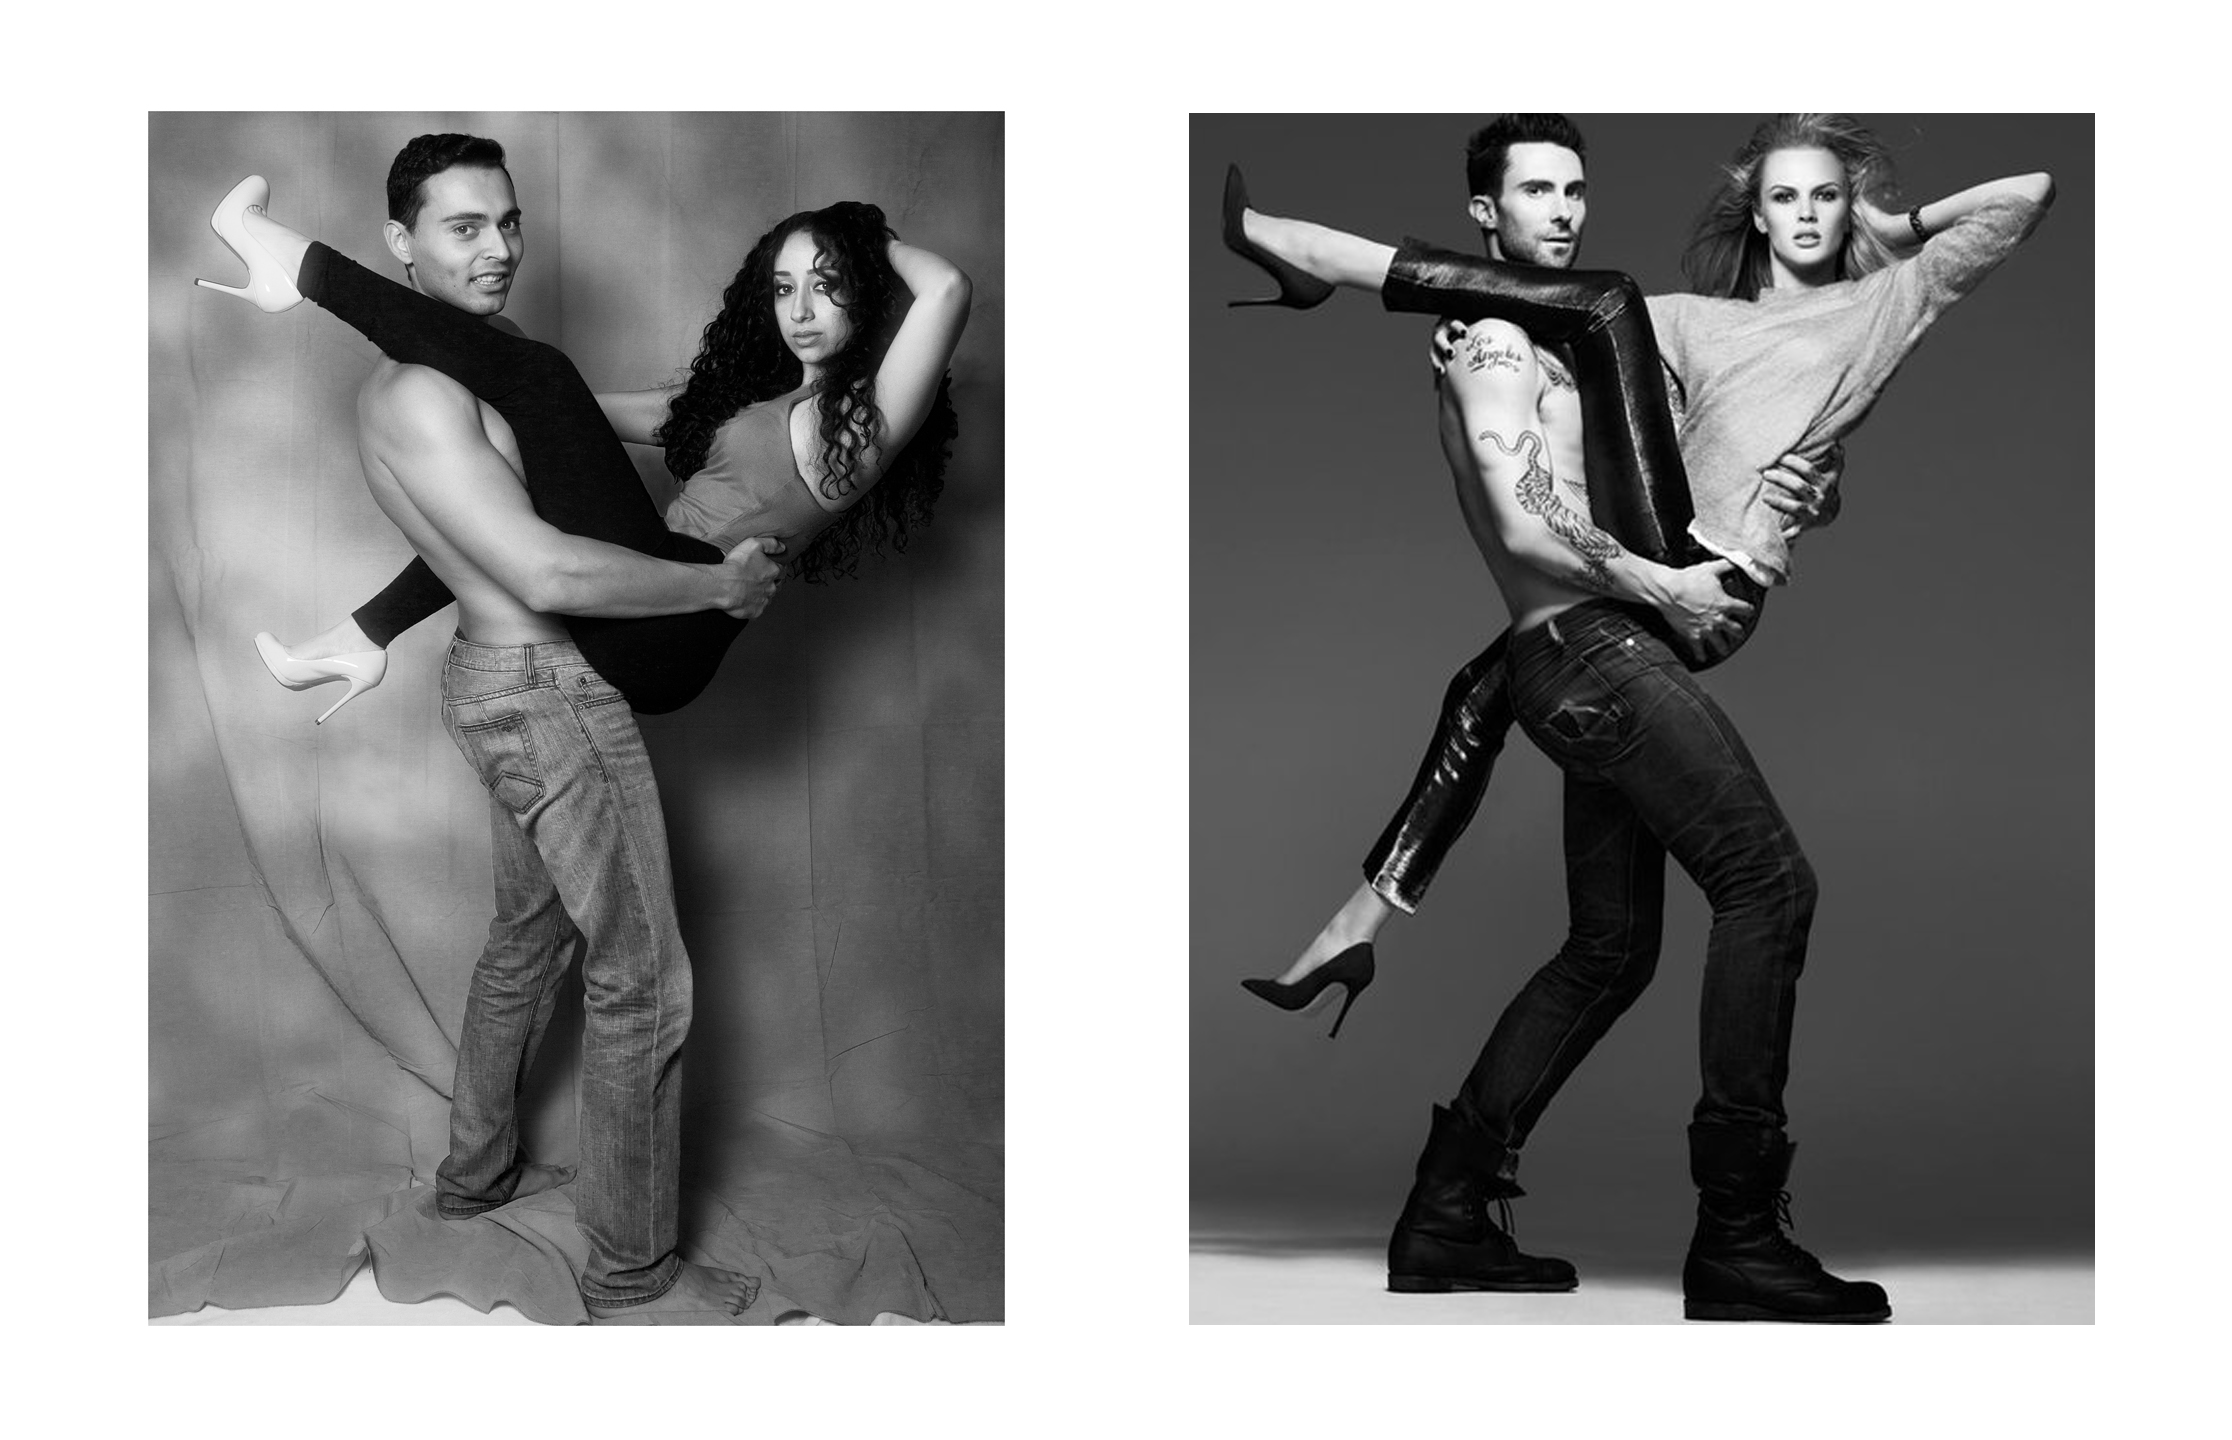 My angle is not as low as in the Vogue photo, (don't even get me started about my backdrop), and the pose might not be exactly like the celebrity couple's, but it's close enough and it was so much fun to create!